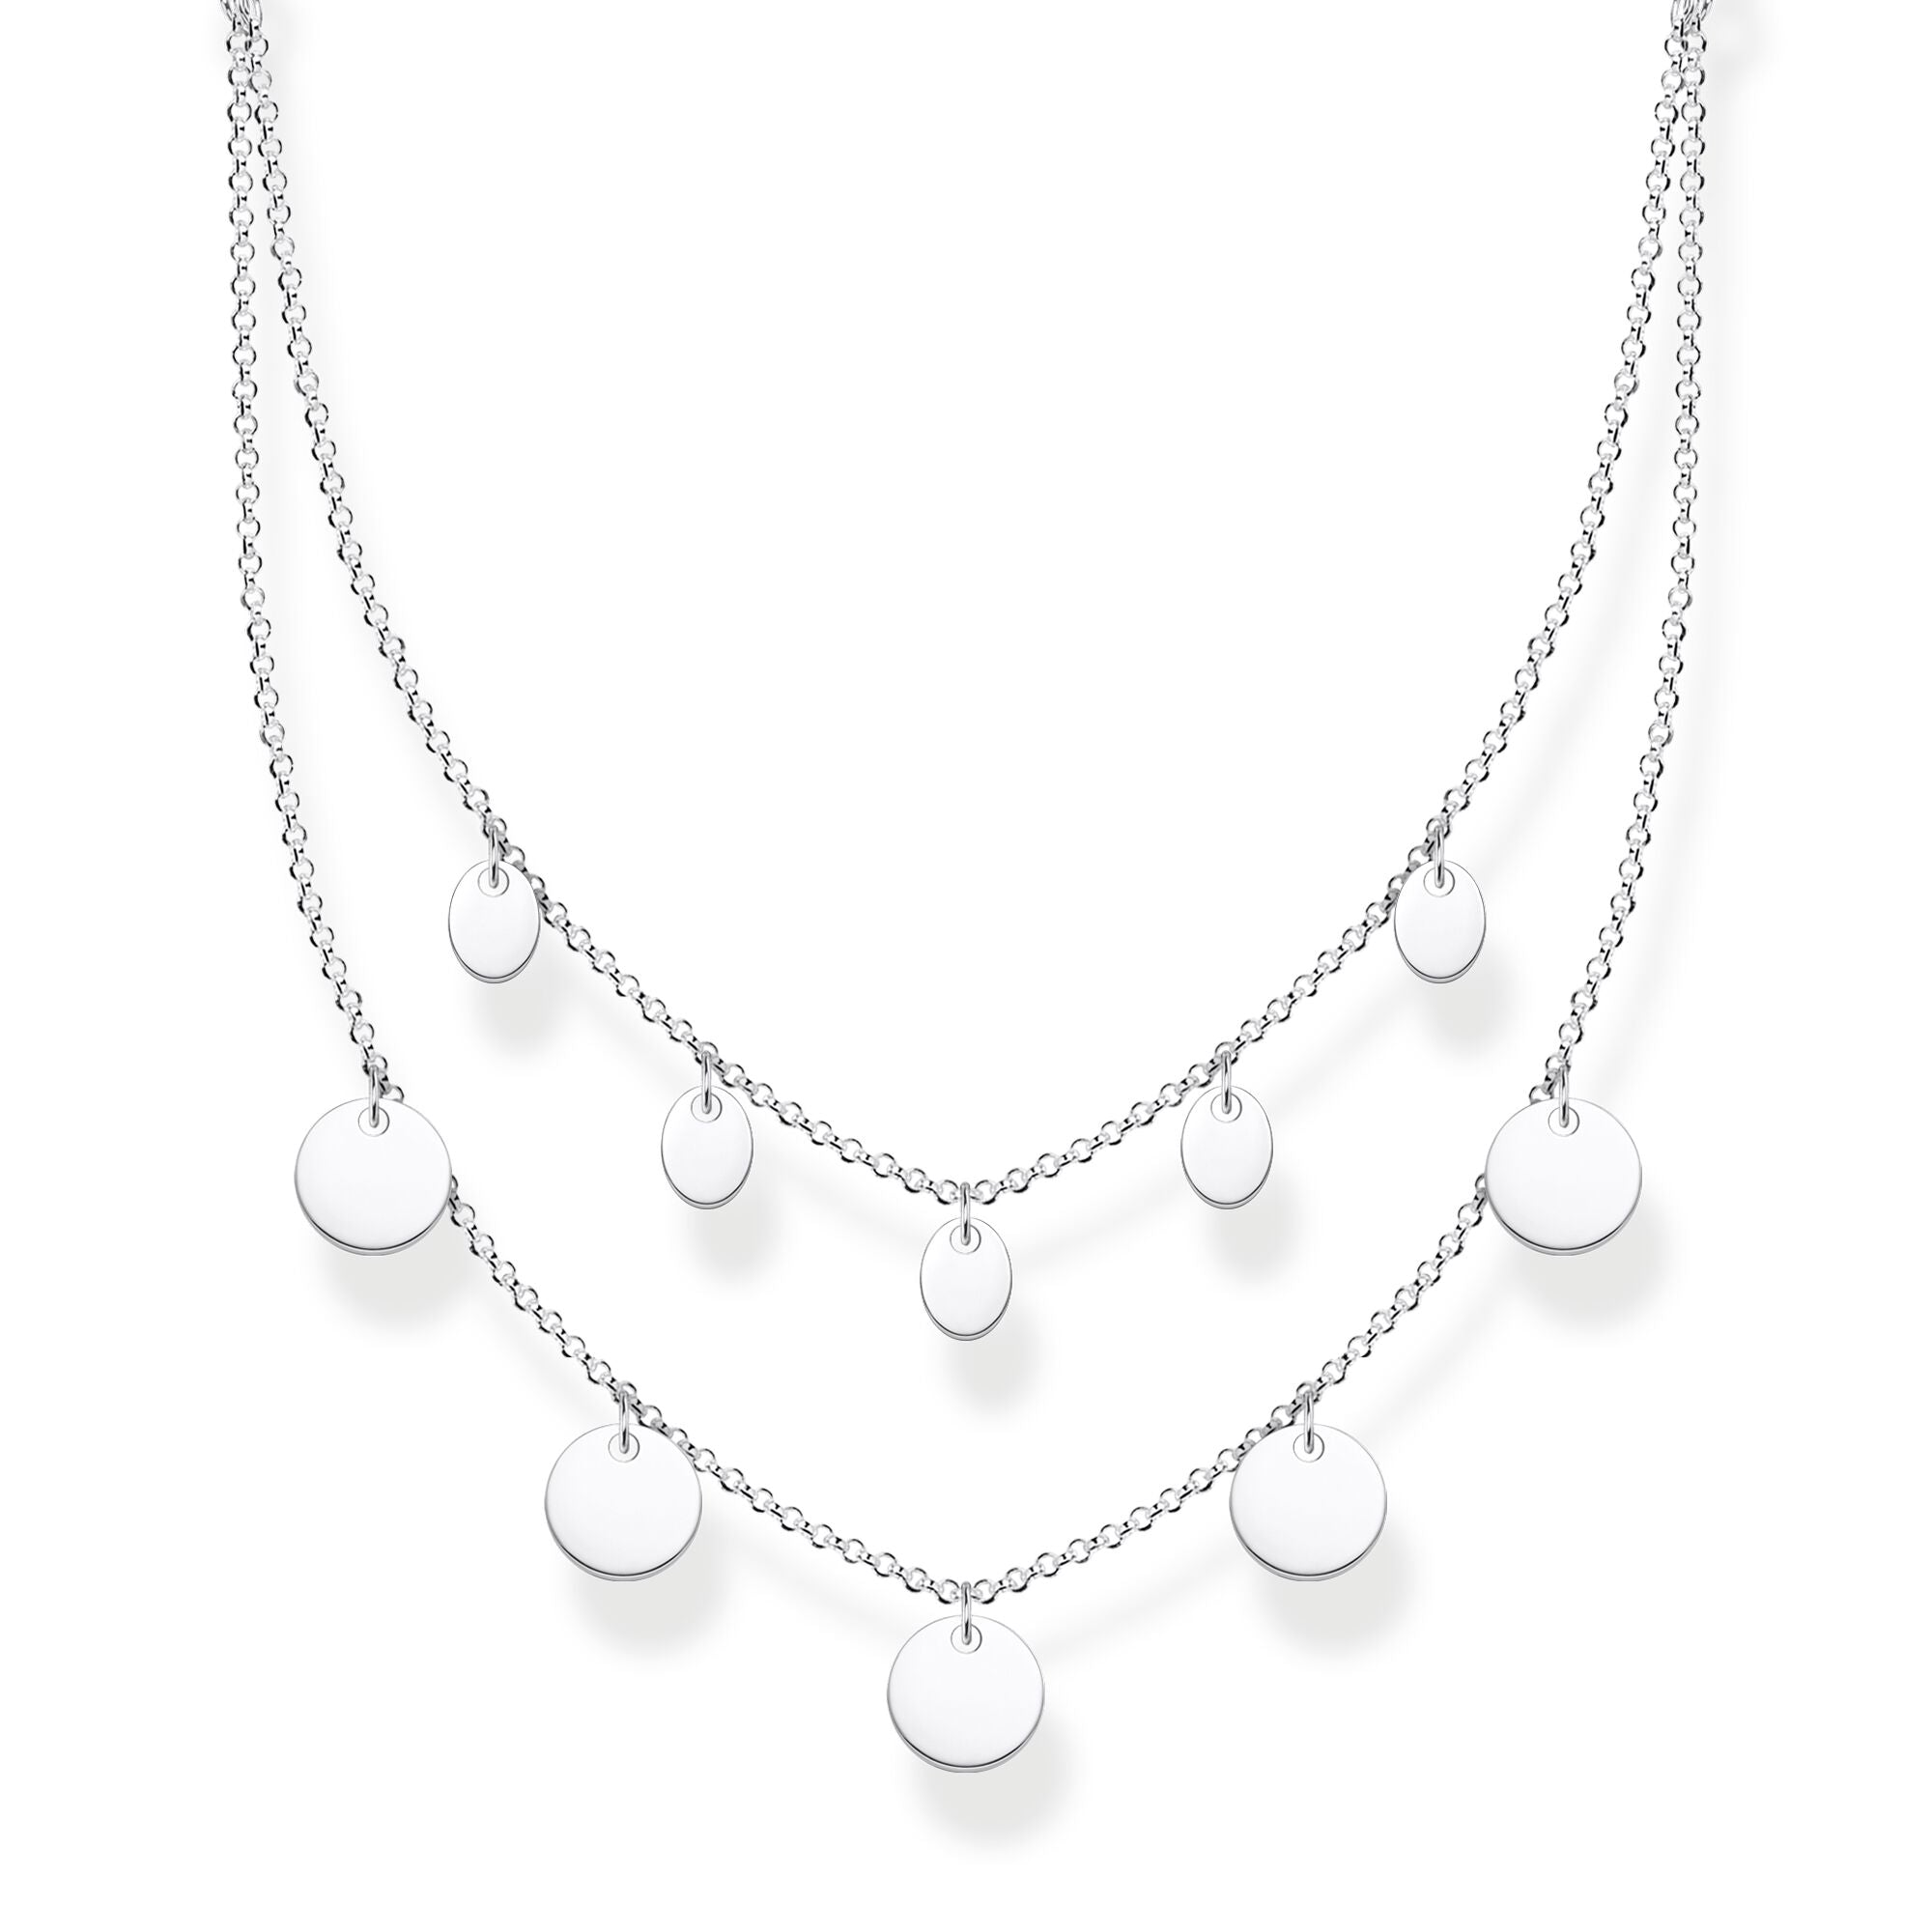 Thomas Sabo sterling silver double layer disk necklace